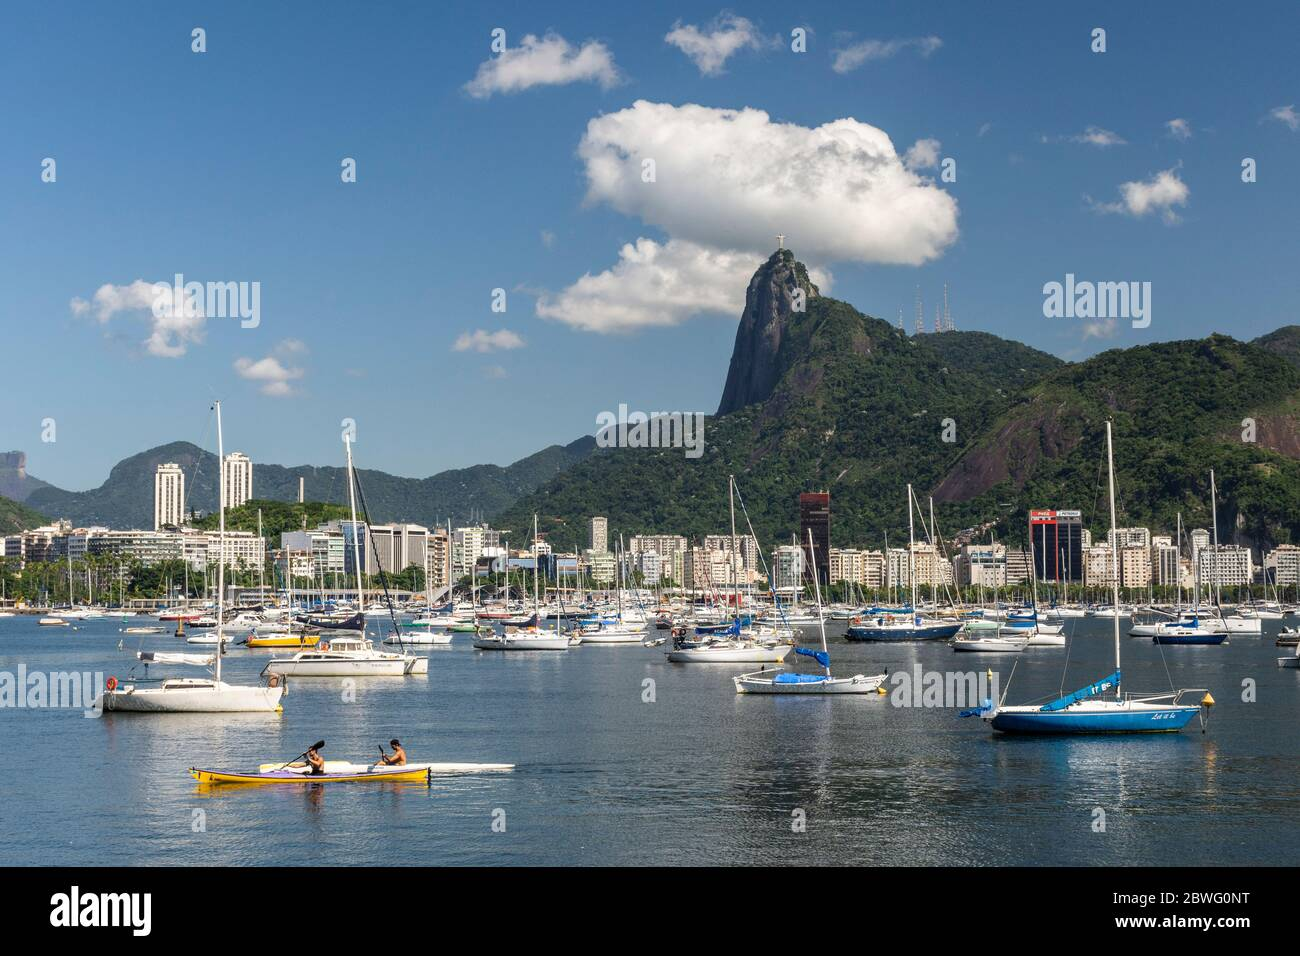 Beautiful view to man kayaking, docked sail boats and Corcovado Mountain with Christ the Redeemer Statue, Rio de Janeiro, Brazil Stock Photo